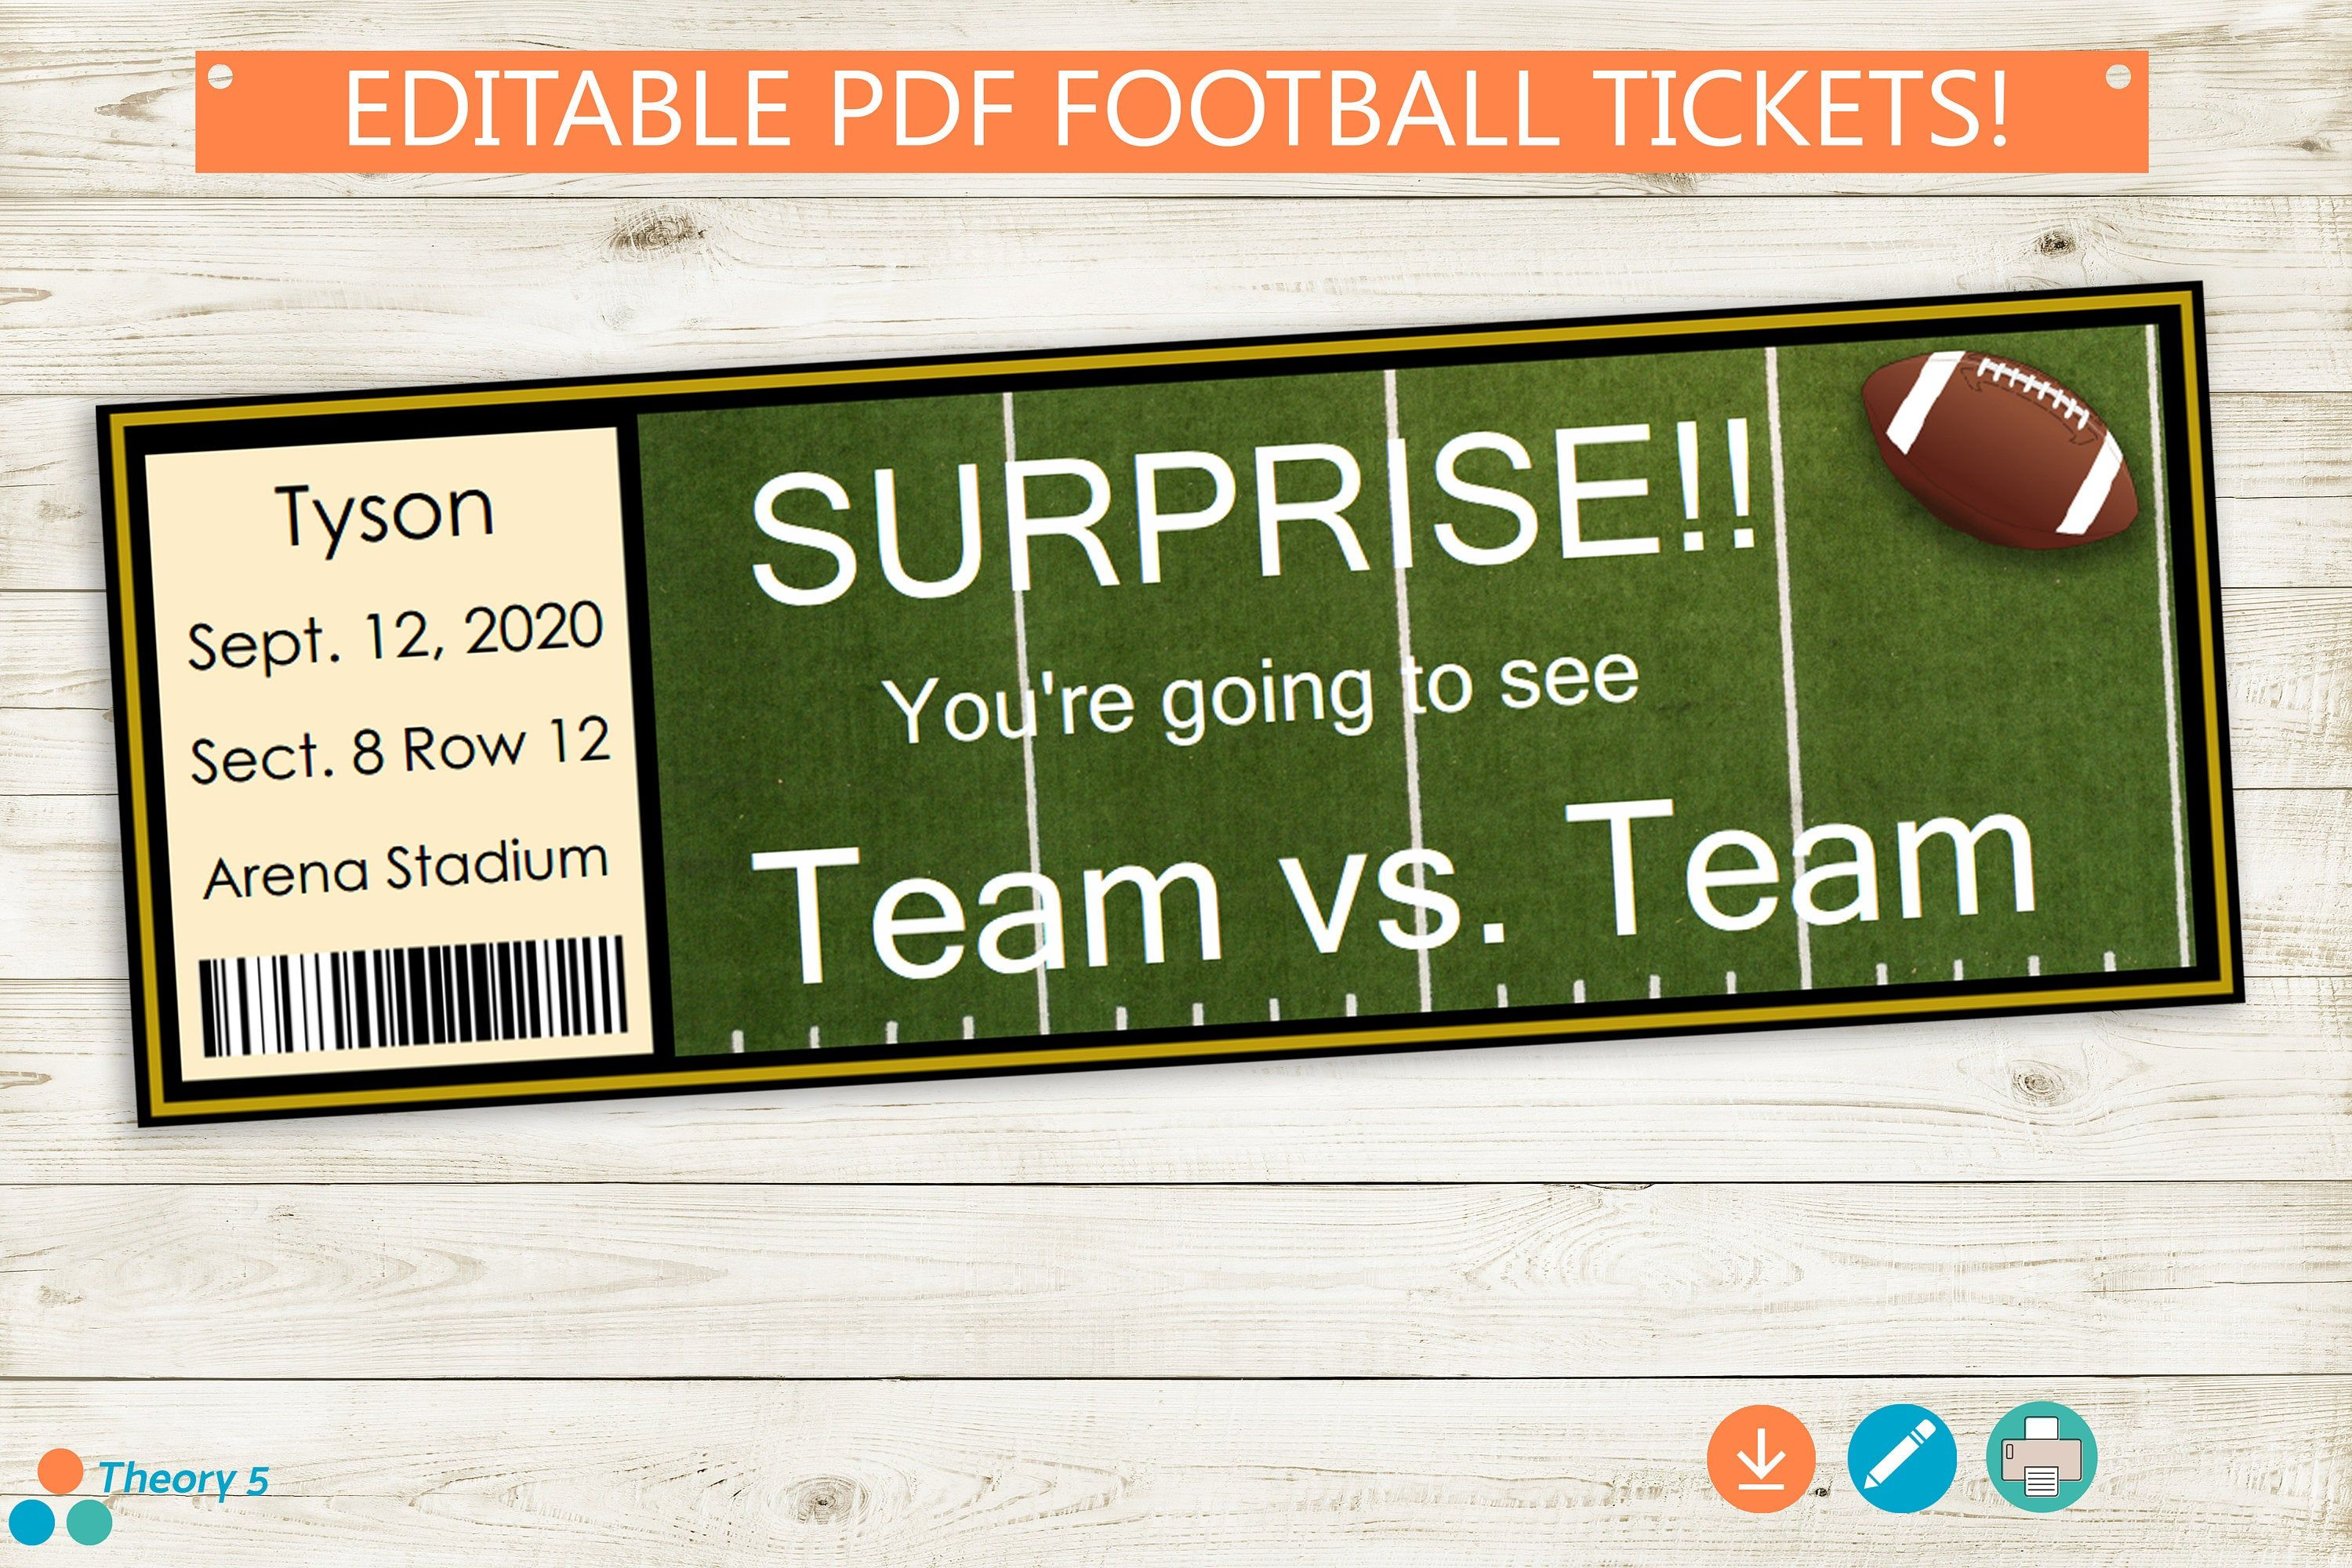 Printable And Editable Football Tickets Adobe Pdf Surprise Etsy In 2021 Football Ticket Football Game Tickets Custom Tickets Football ticket template free download